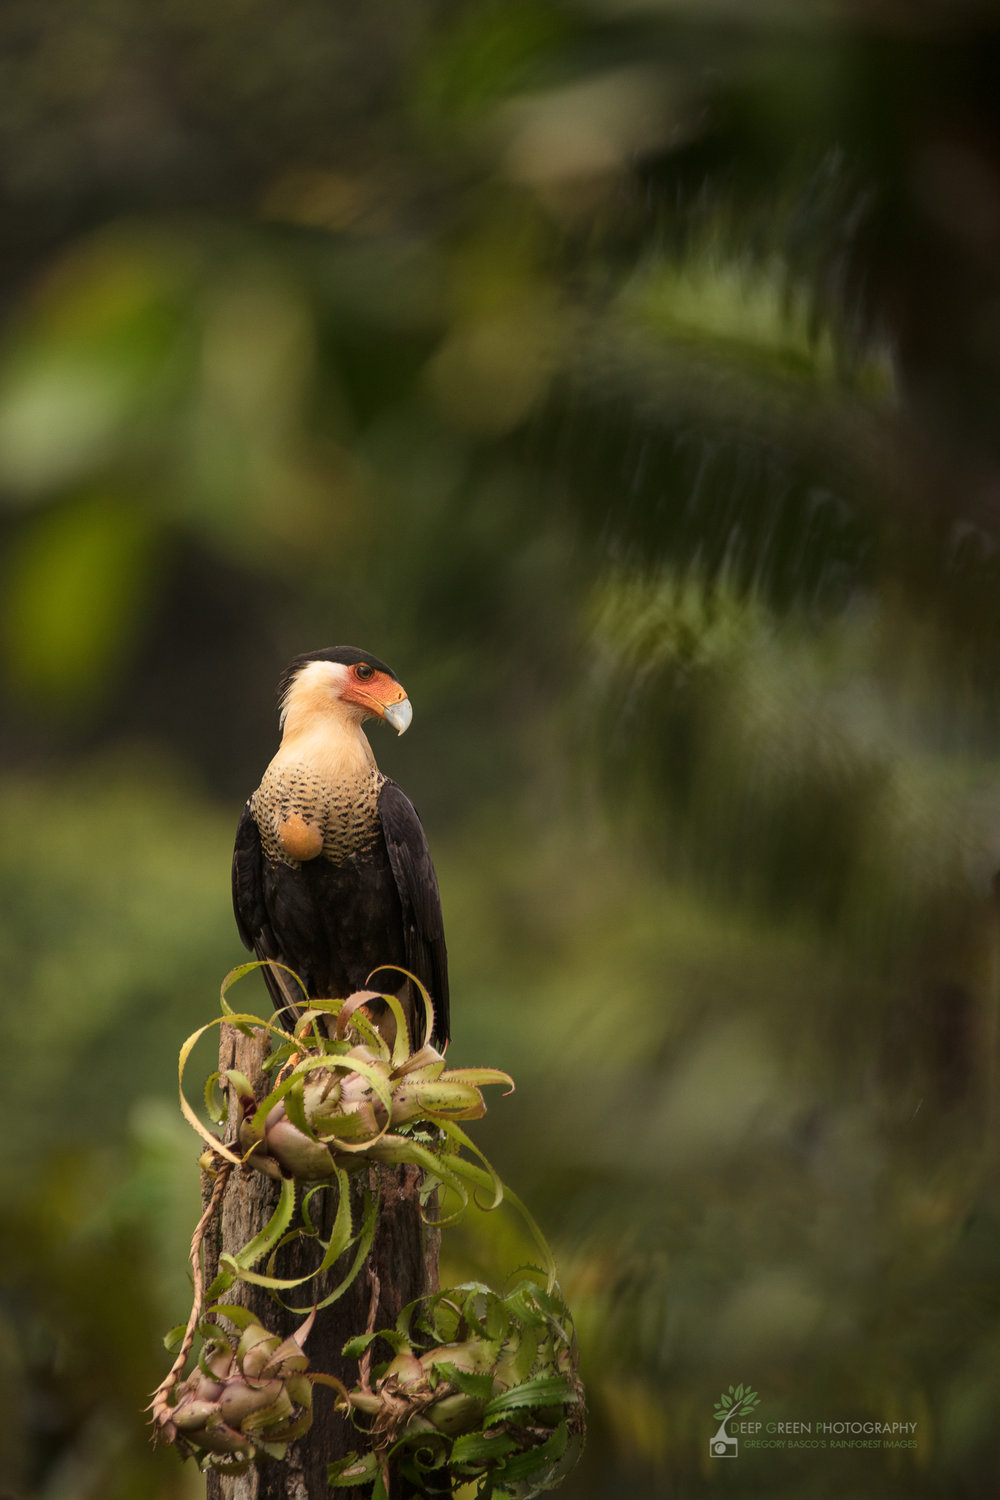 A Crested Caracara perched in rainforest, Costa Rica